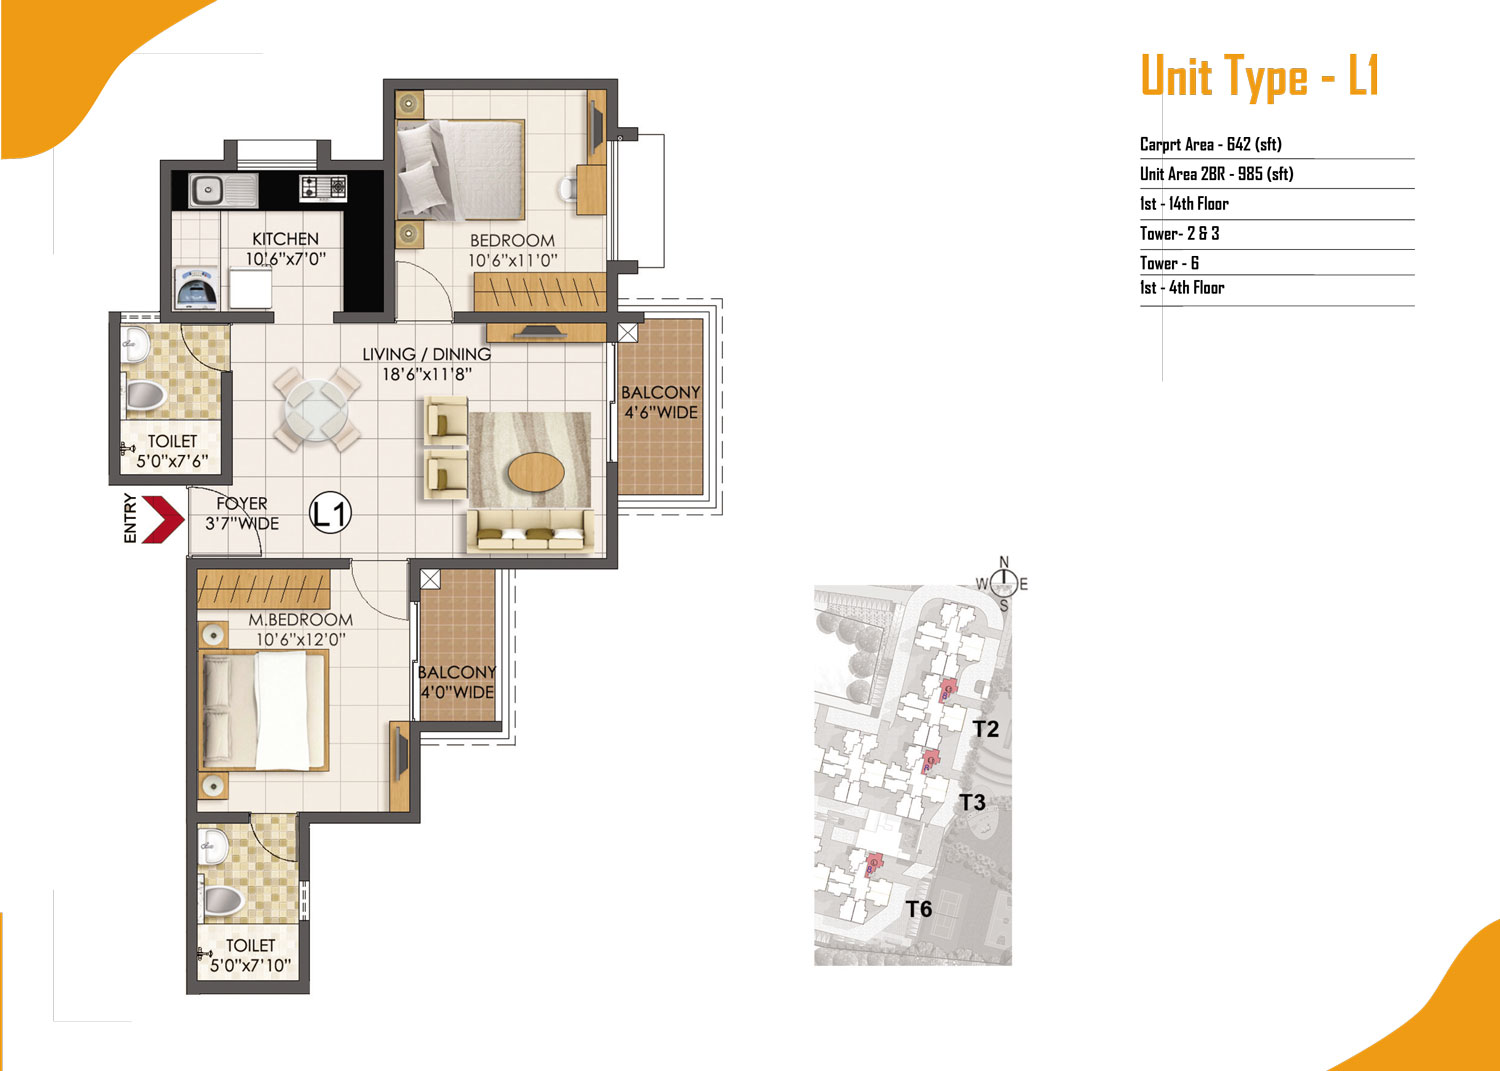 Type L1 - 2 Bed - 985 Sq Ft